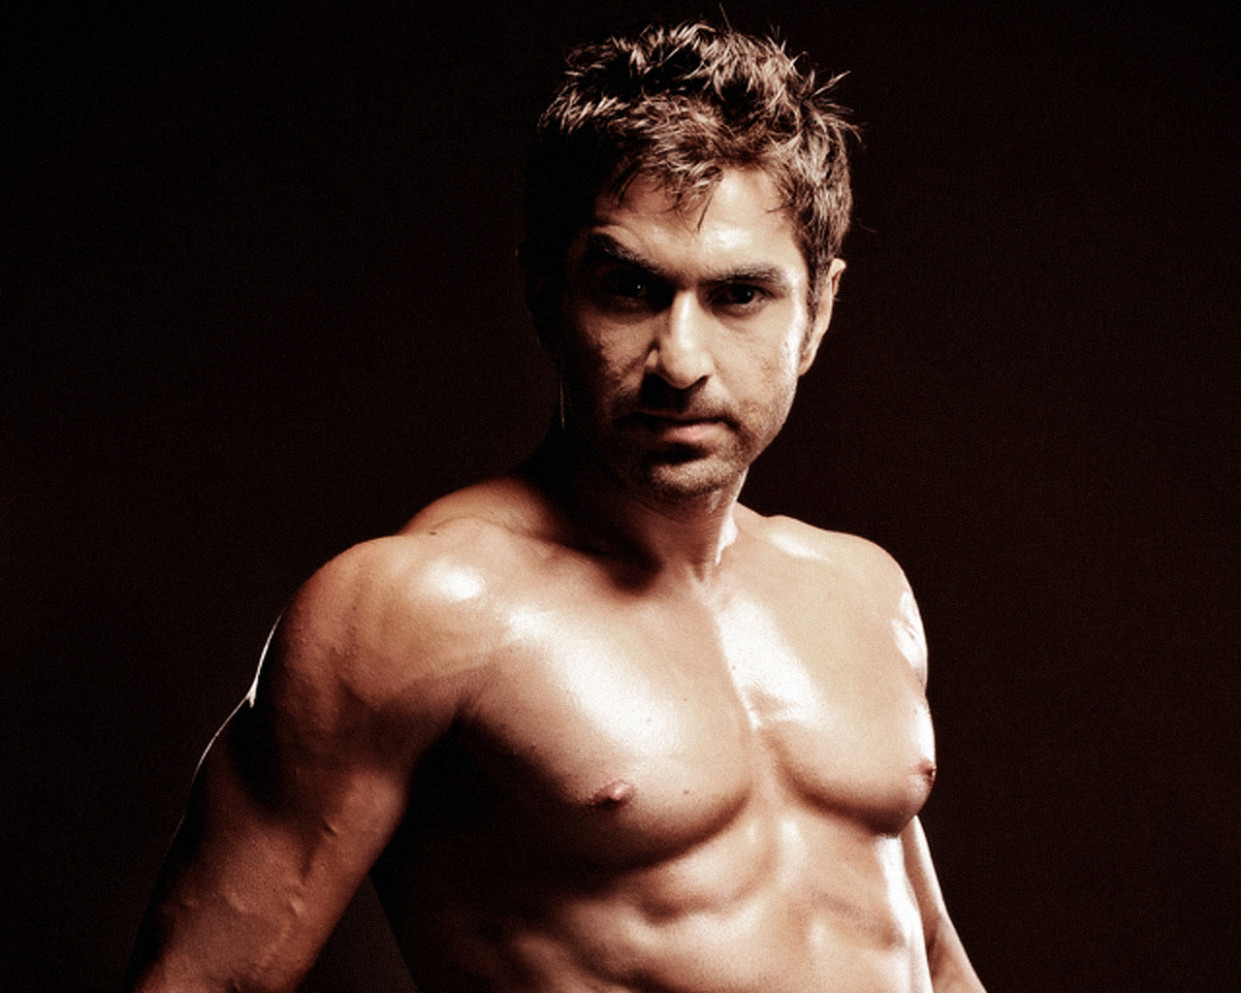 TOLLYWOOD ACTOR JEET SHIRTLESS - Bollywood Wallpaper ...